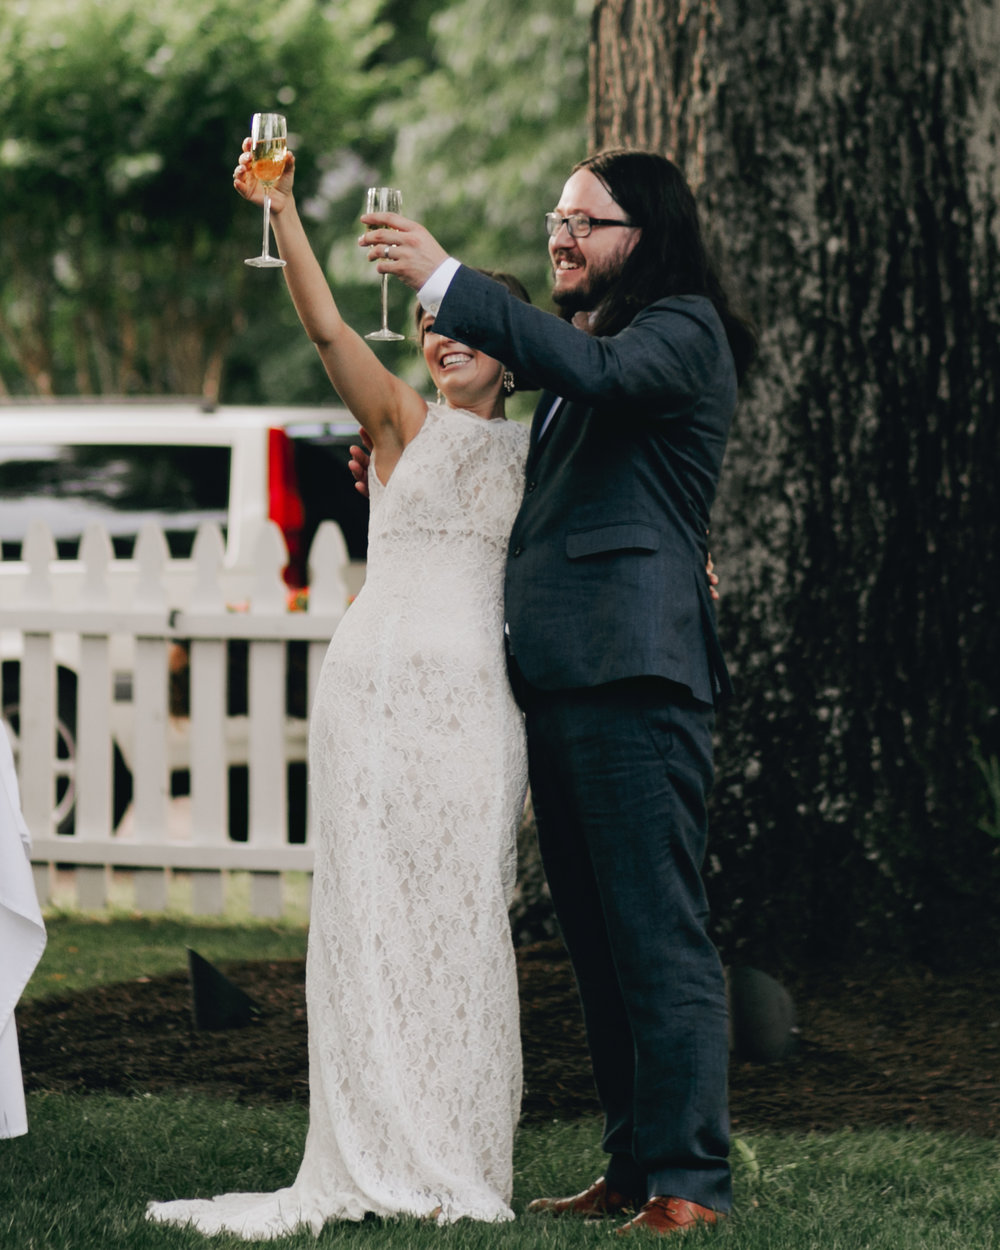 Photography Anthology - Backyard Indie Eclectic Wedding Nashville (59 of 85).jpg